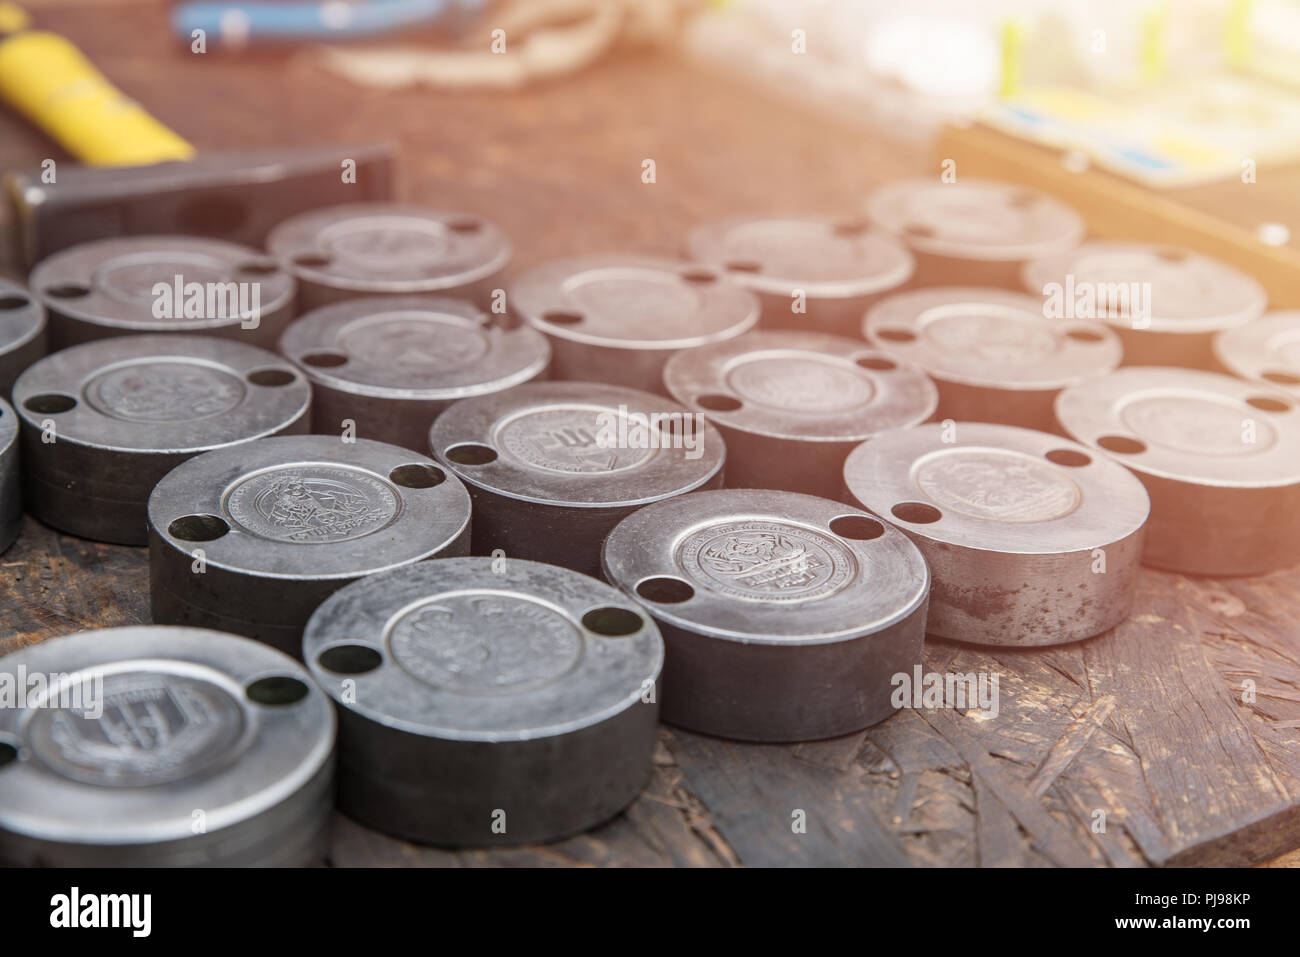 Steel cliche for creating souvenir coins. Tool for creating coins by embossing, hobby - Stock Image